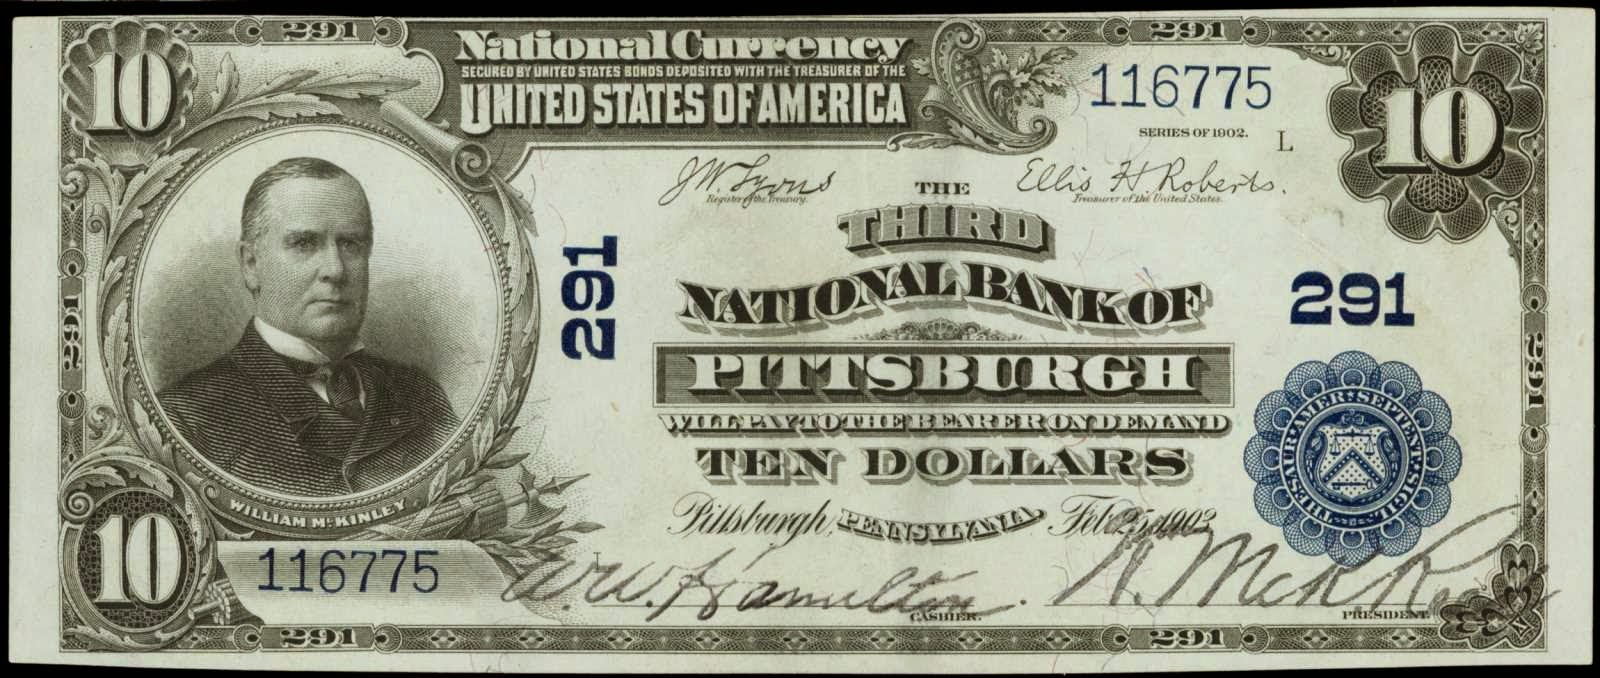 10 Dollar bill National Currency 1902 McKinley